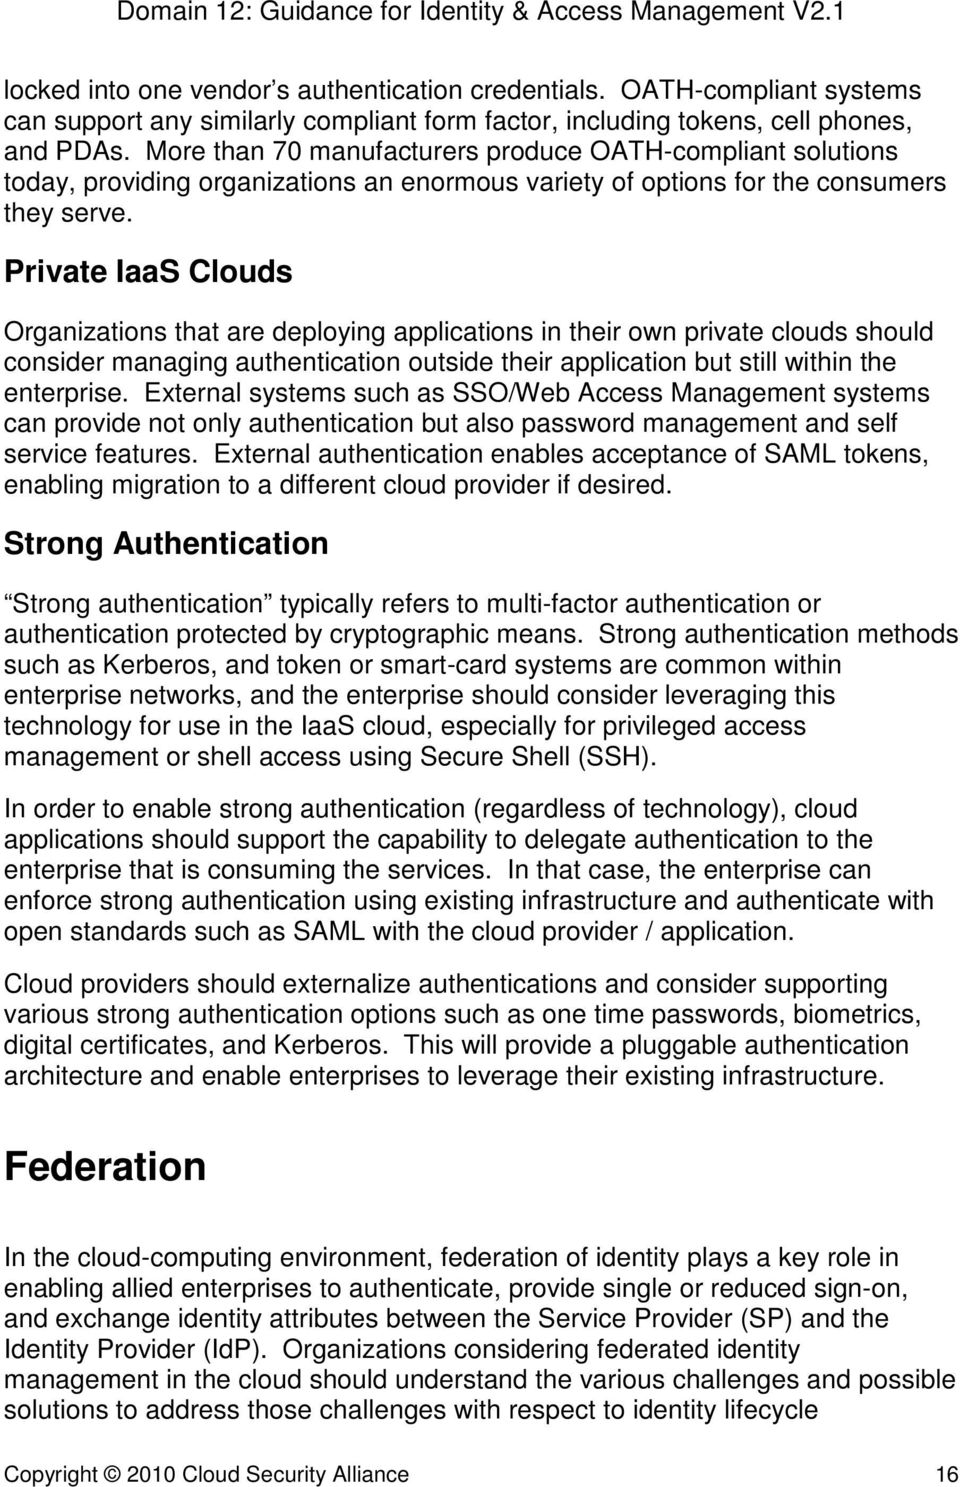 Private IaaS Clouds Organizations that are deploying applications in their own private clouds should consider managing authentication outside their application but still within the enterprise.